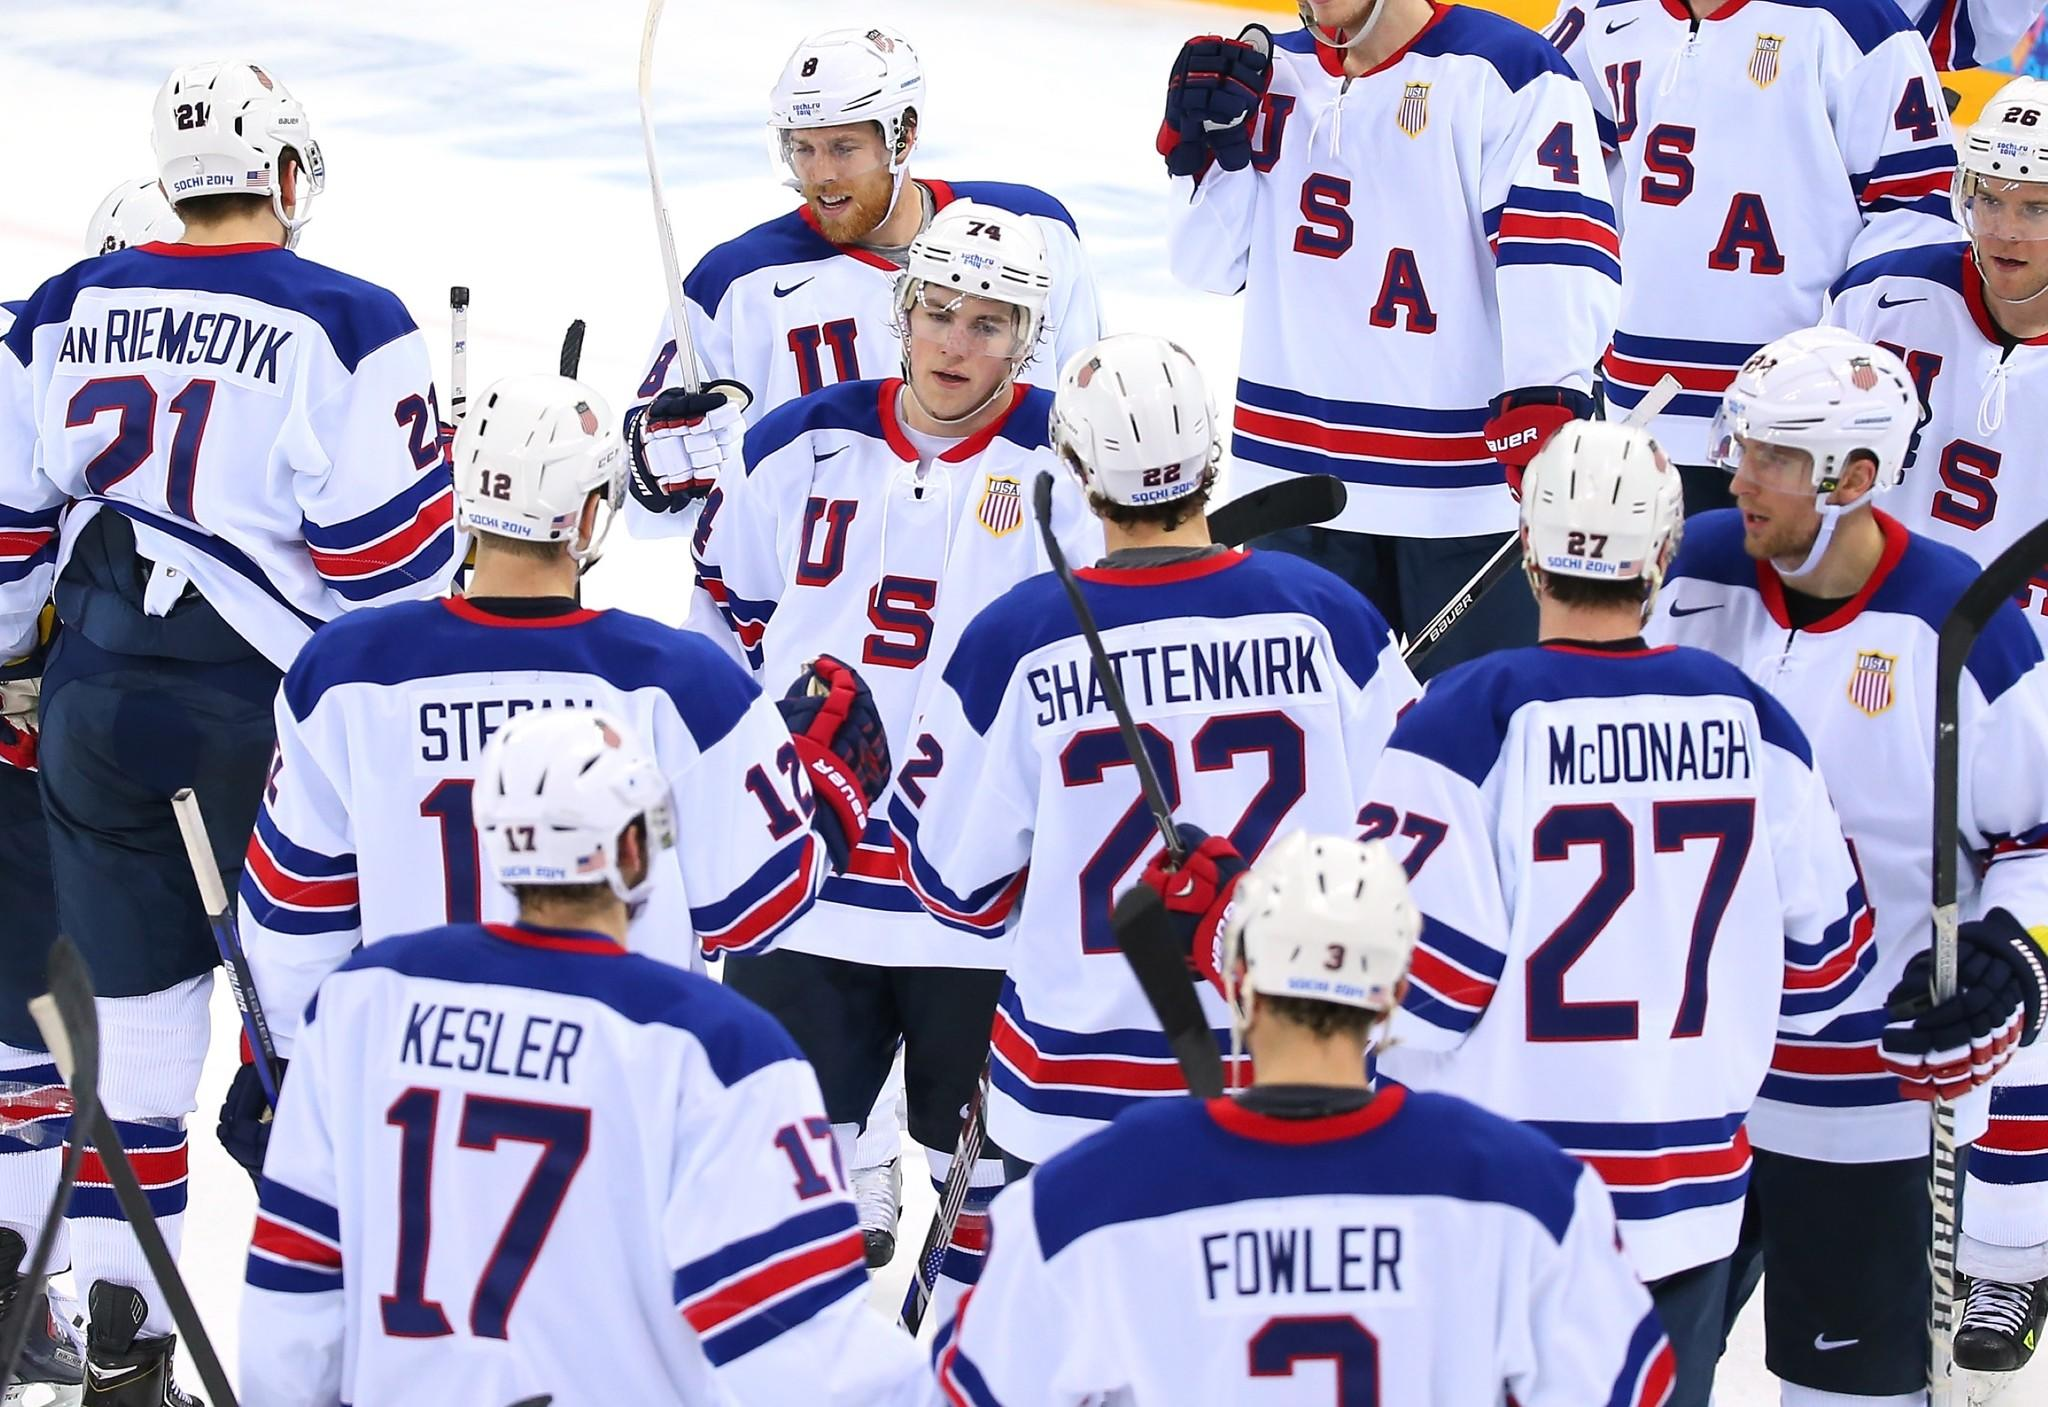 T.J. Oshie (center)shakes hands with teammates after the U.S team beat Slovenia 5-1 Sunday.